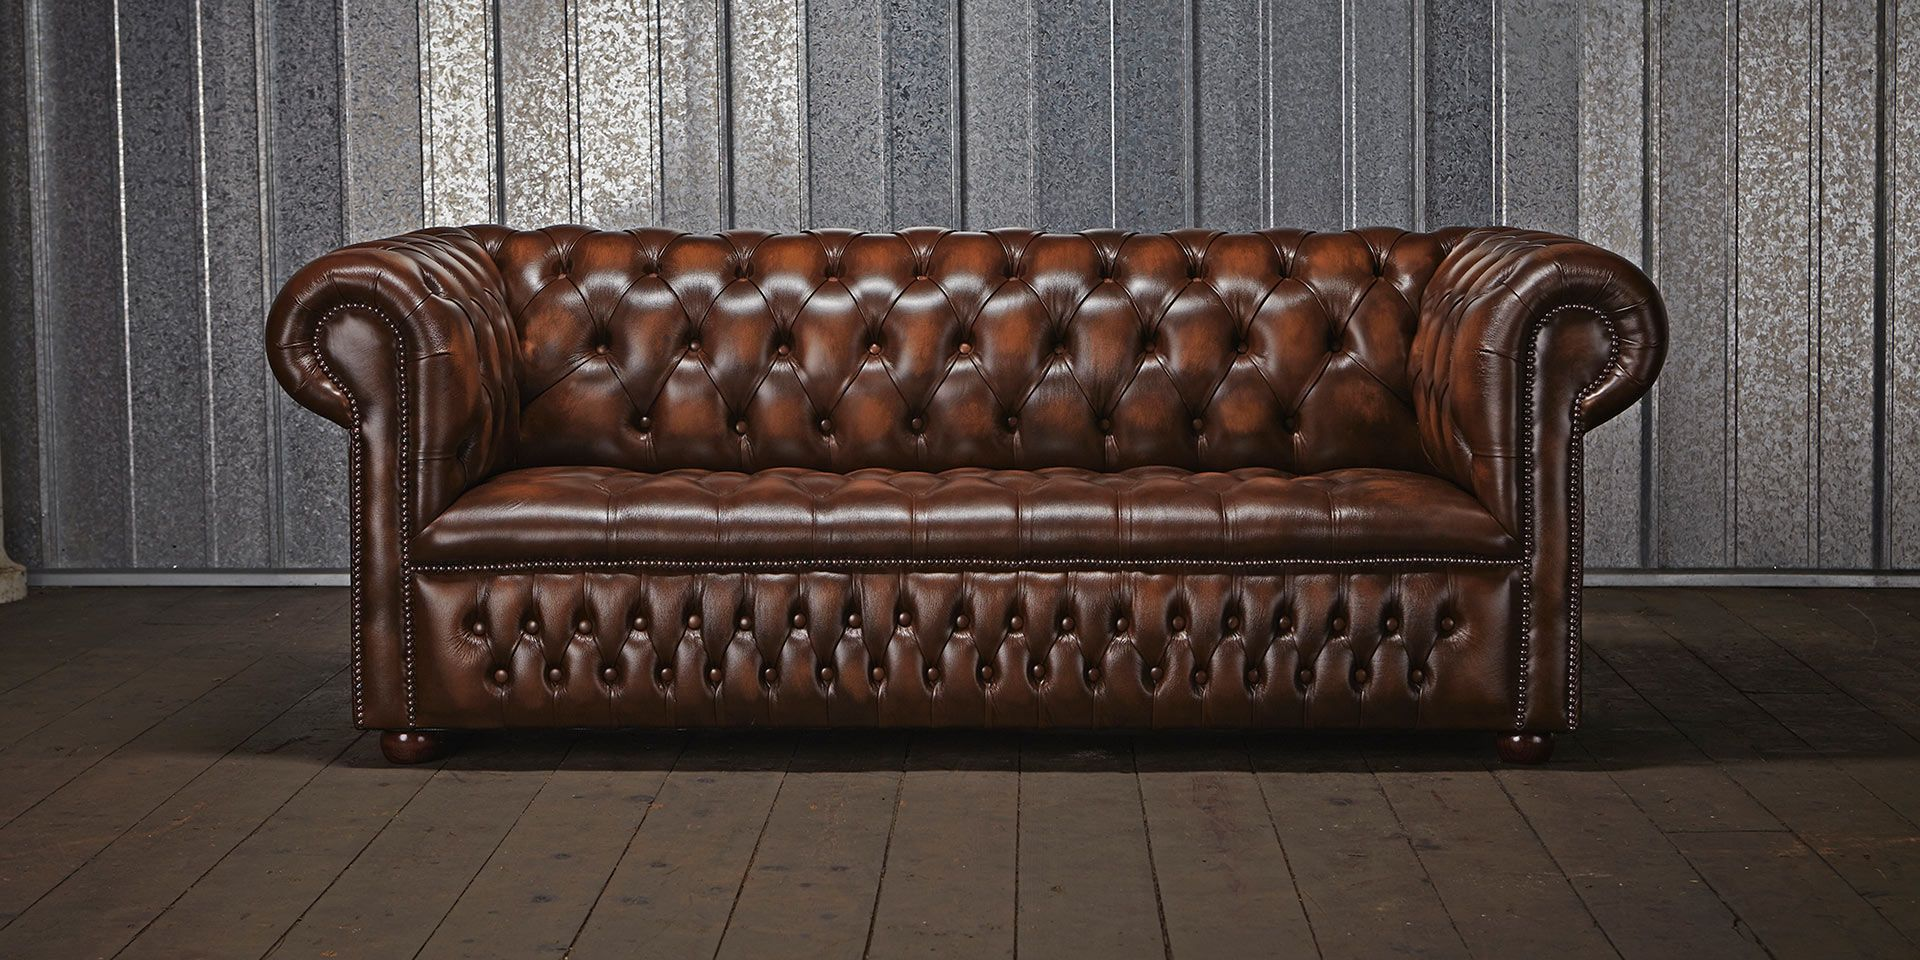 this image identifies the chesterfield sofa which was one the of the